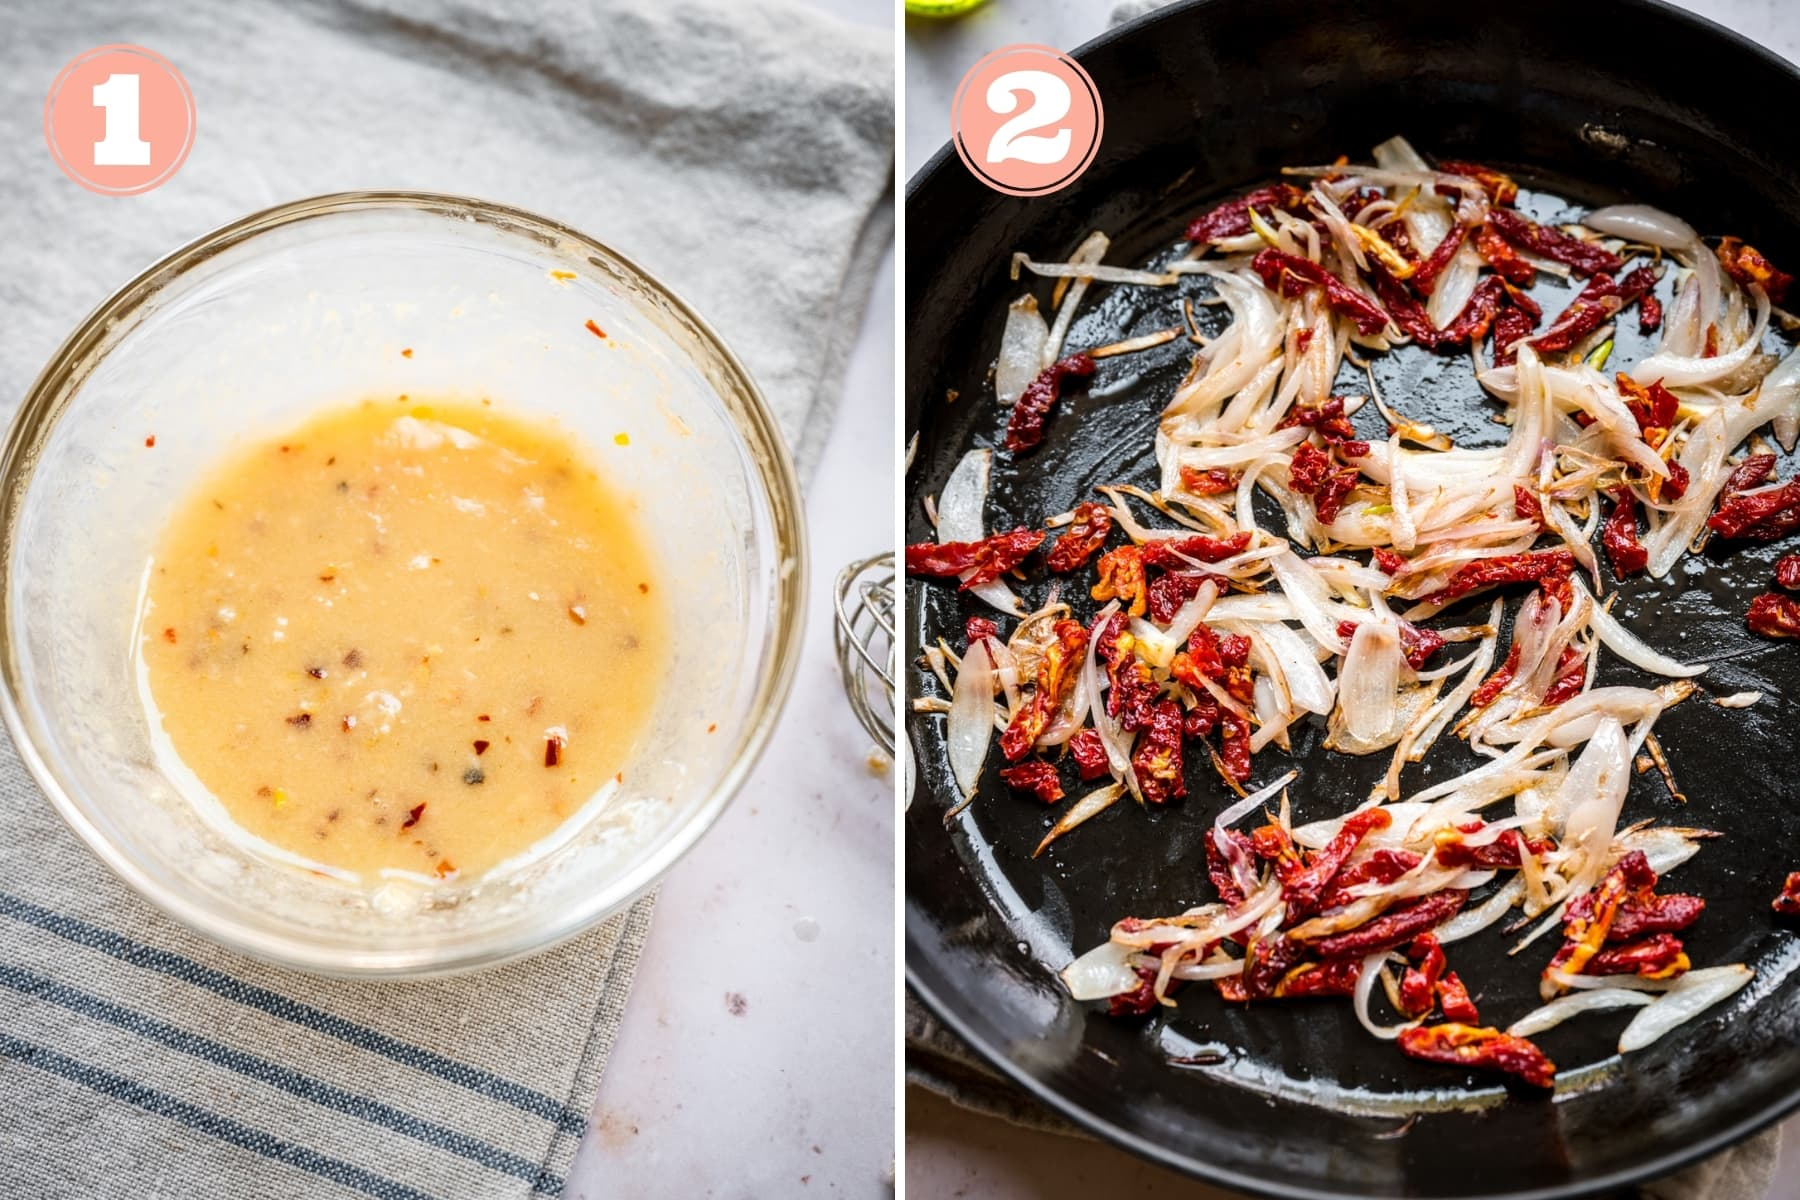 on the left: garlic olive oil dressing in a bowl. on the right: sautéed shallots and sun dried tomatoes.